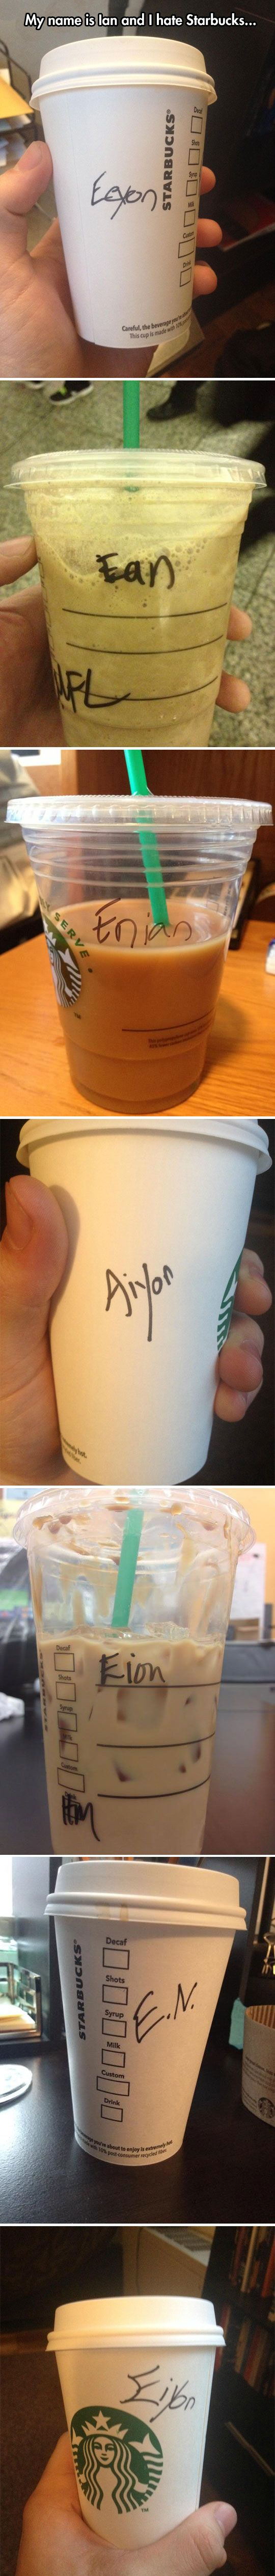 Not even once they got it right // funny pictures - funny photos - funny images - funny pics - funny quotes - #lol #humor #funnypictures